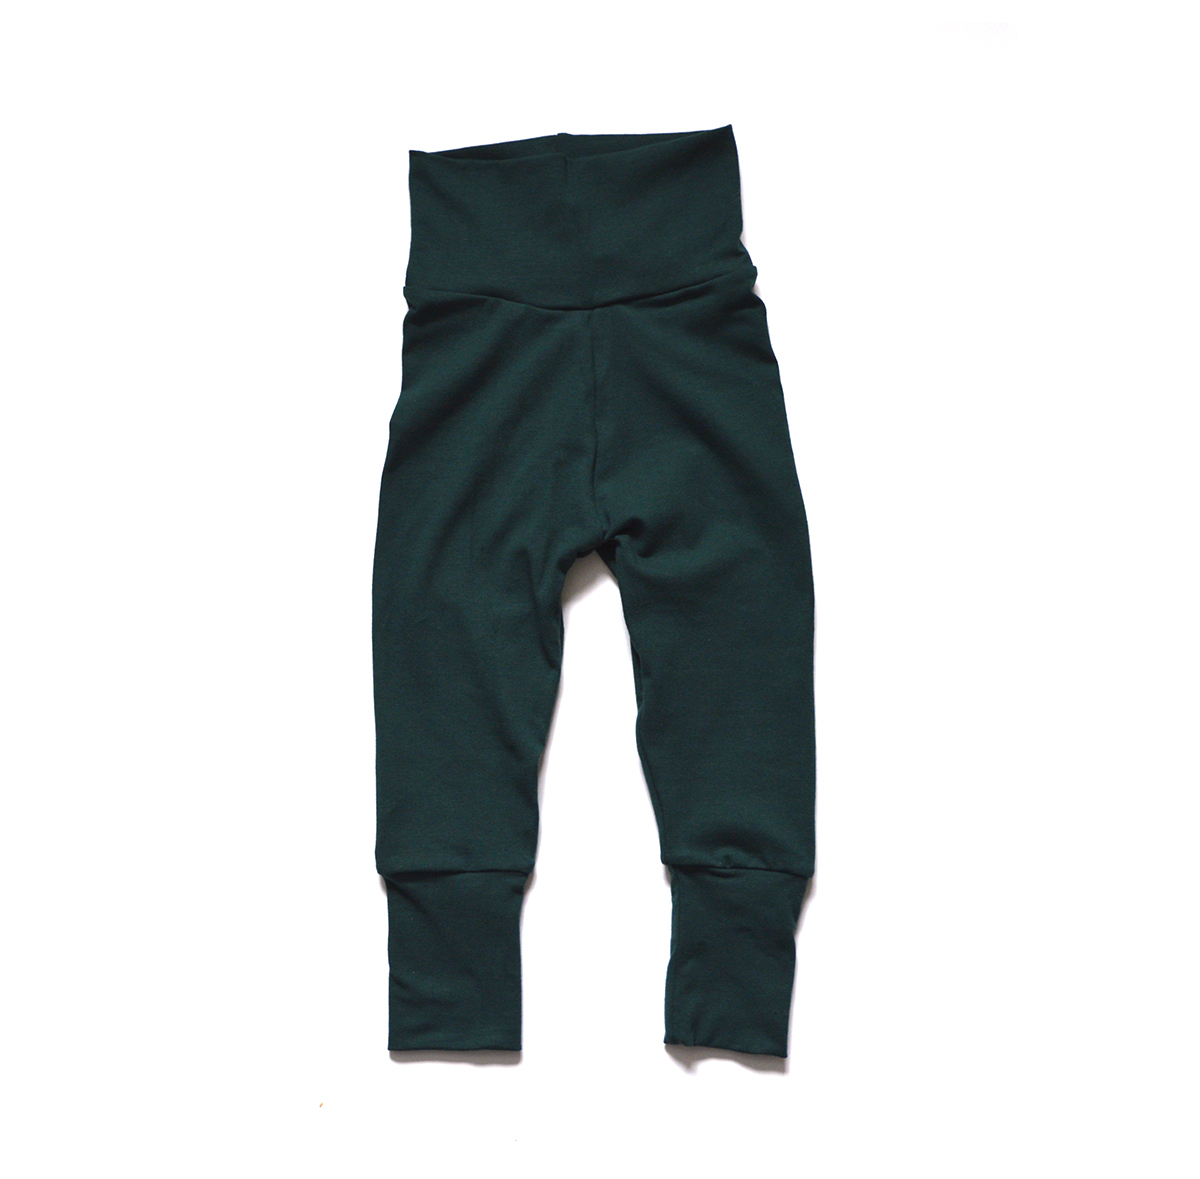 Little Sprout Pants™ Olive Rib Knit SECONDS 00683